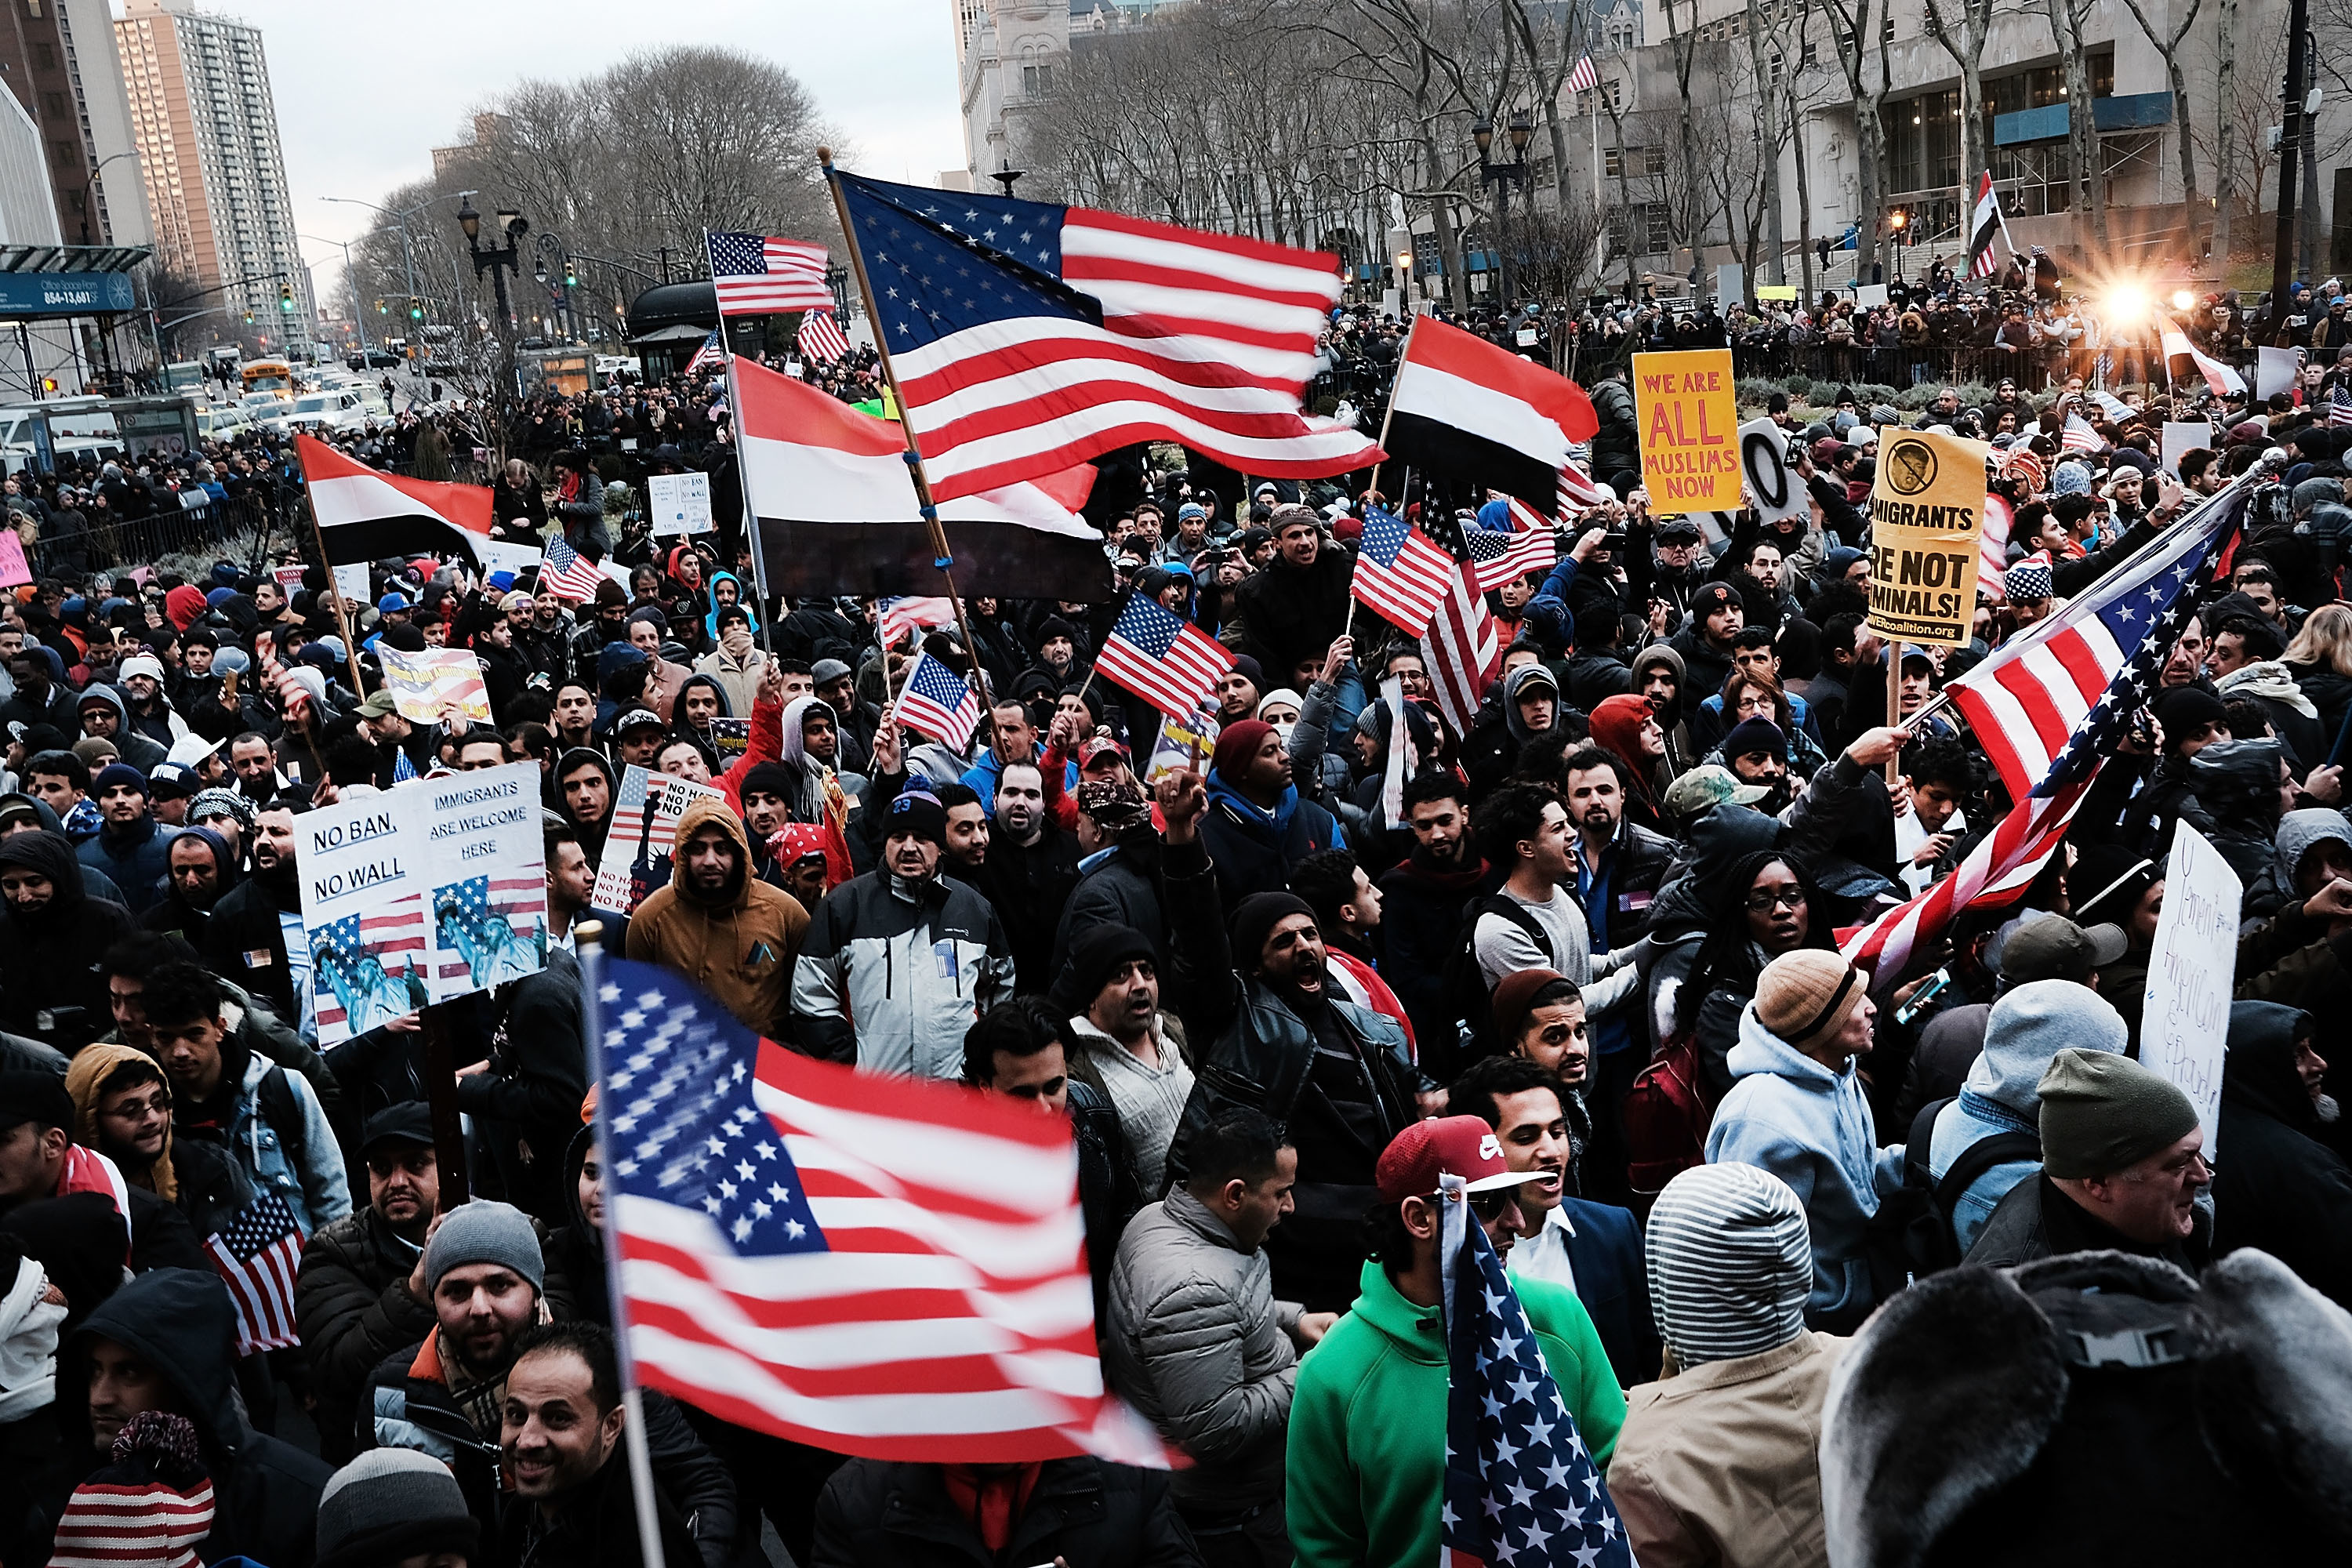 Ethnic Yemenis and supporters protest this week in New York City against President Donald Trump's executive order temporarily banning immigrants and refugees from seven Muslim-majority countries.